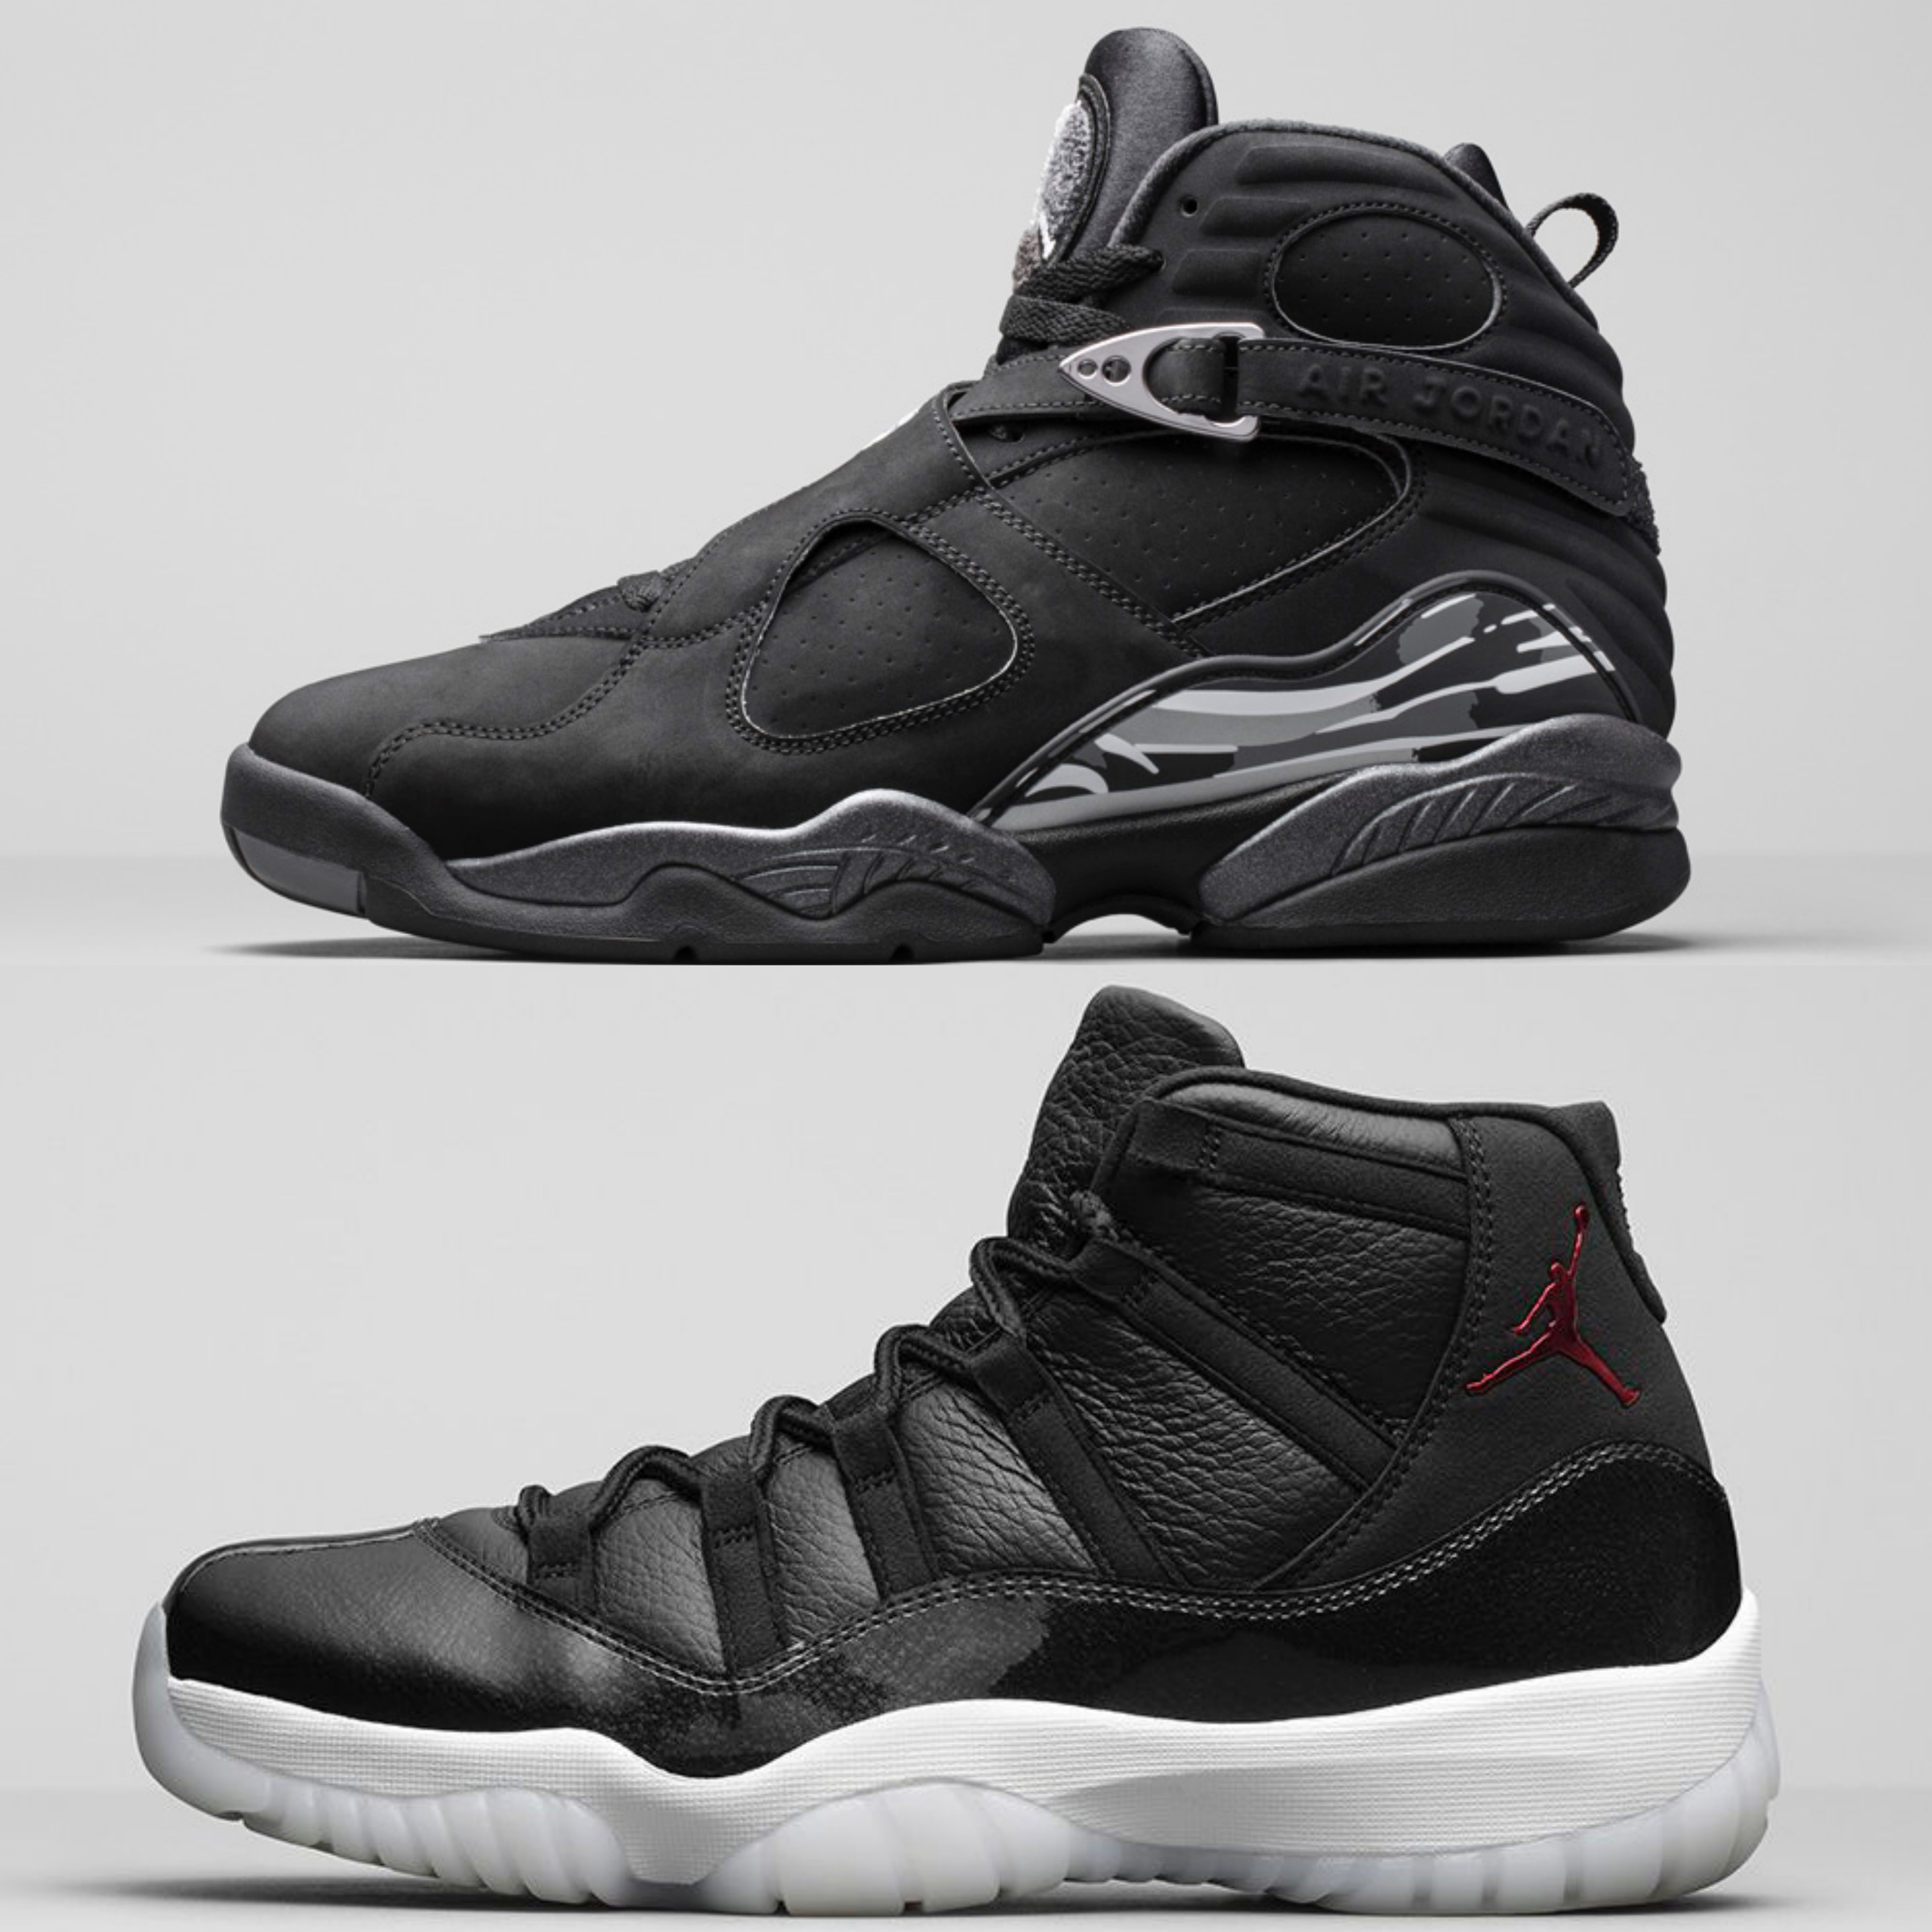 1fa771d9f1e Upcoming Air Jordan Retros With Release Date Changes - WearTesters